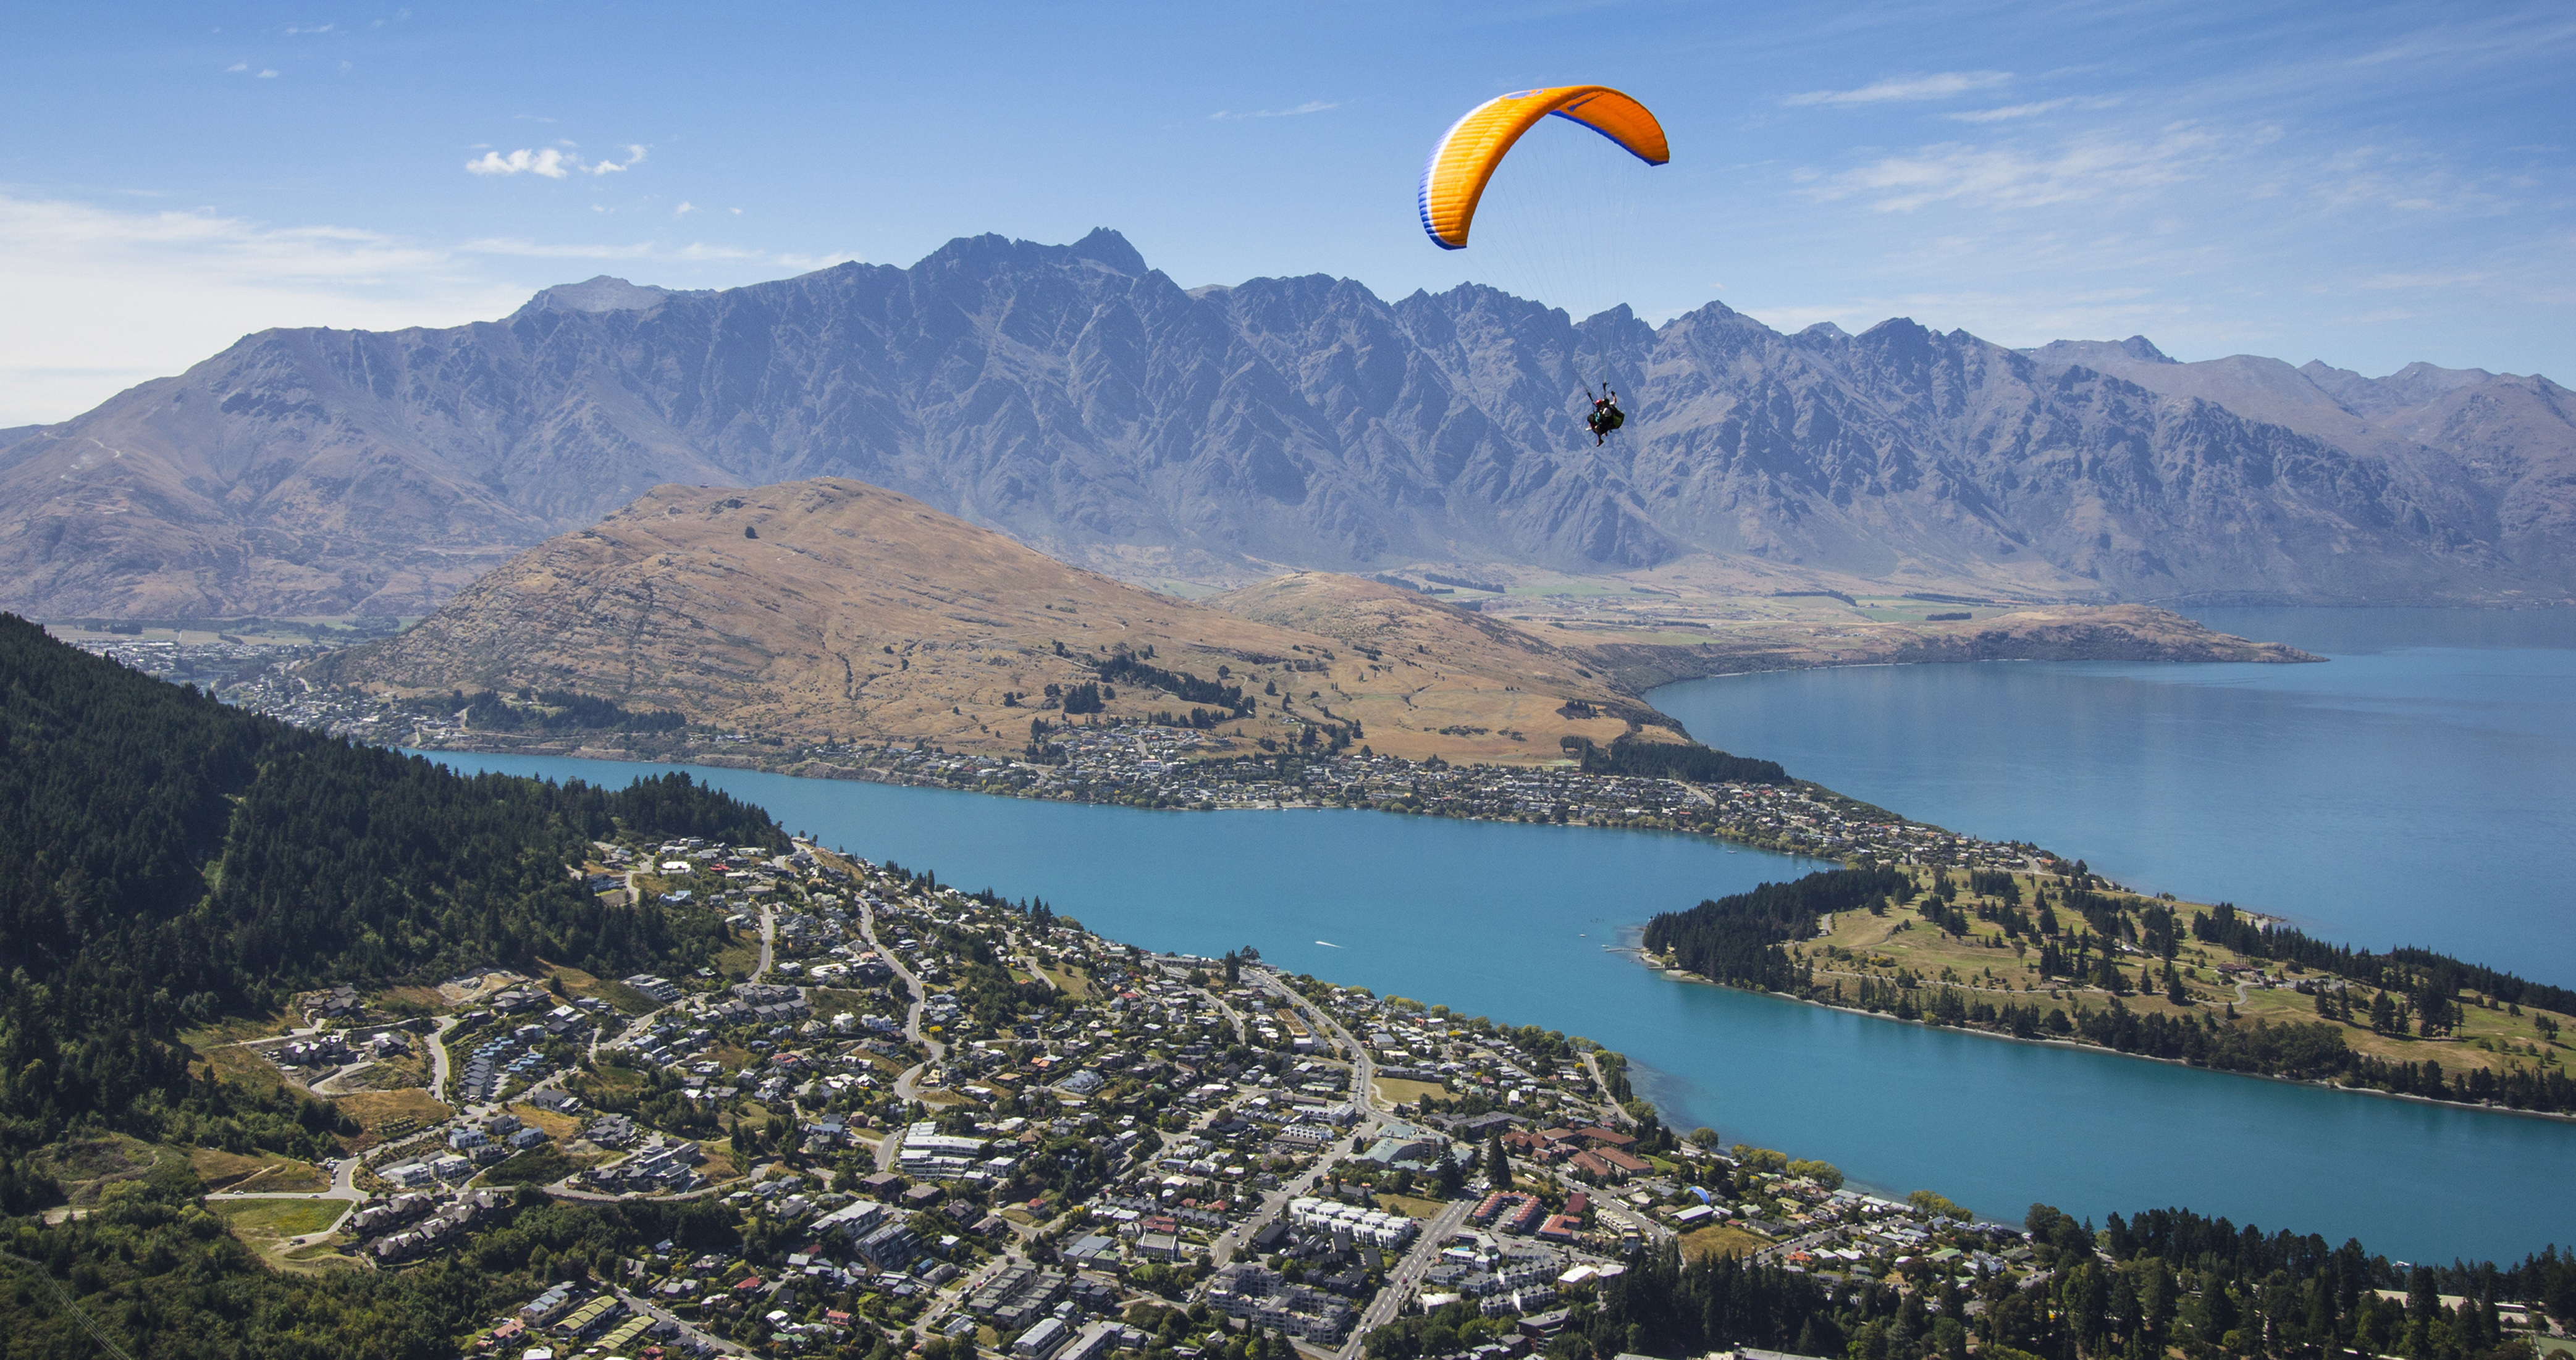 Paragliding from Bobs Peak cropped